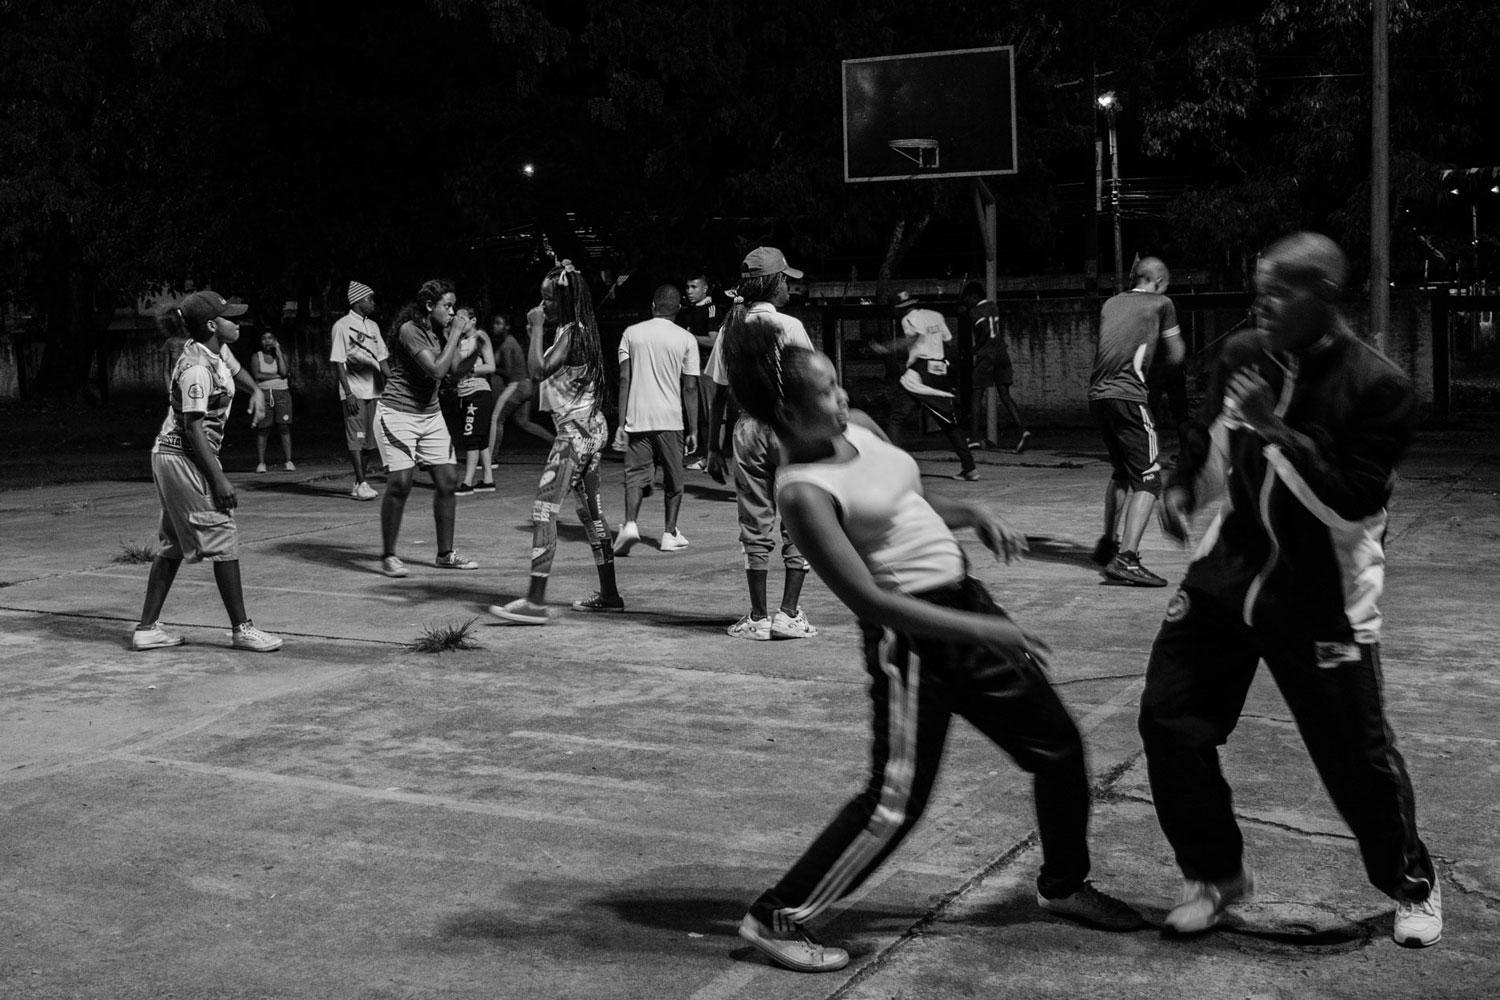 Almost every night, the members of 'Box Panthera' train in the Sports Center of the Ciudad Córdoba neighborhood. January 25, 2018.